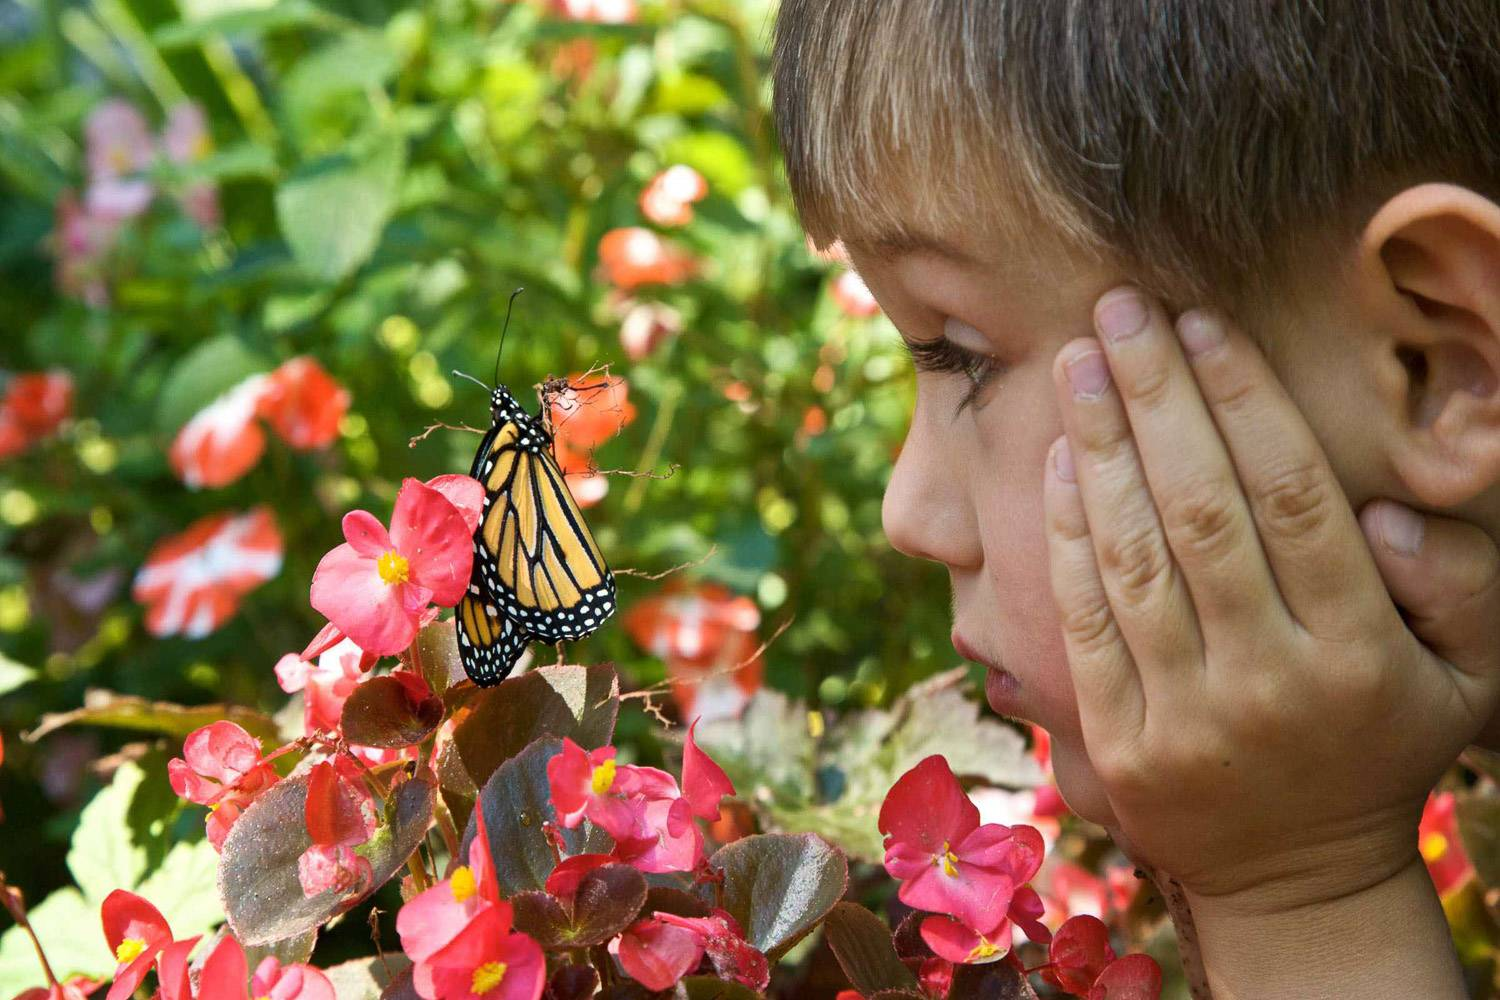 Image of child looking at a butterfly up close (Photo credit: PIXNIO)